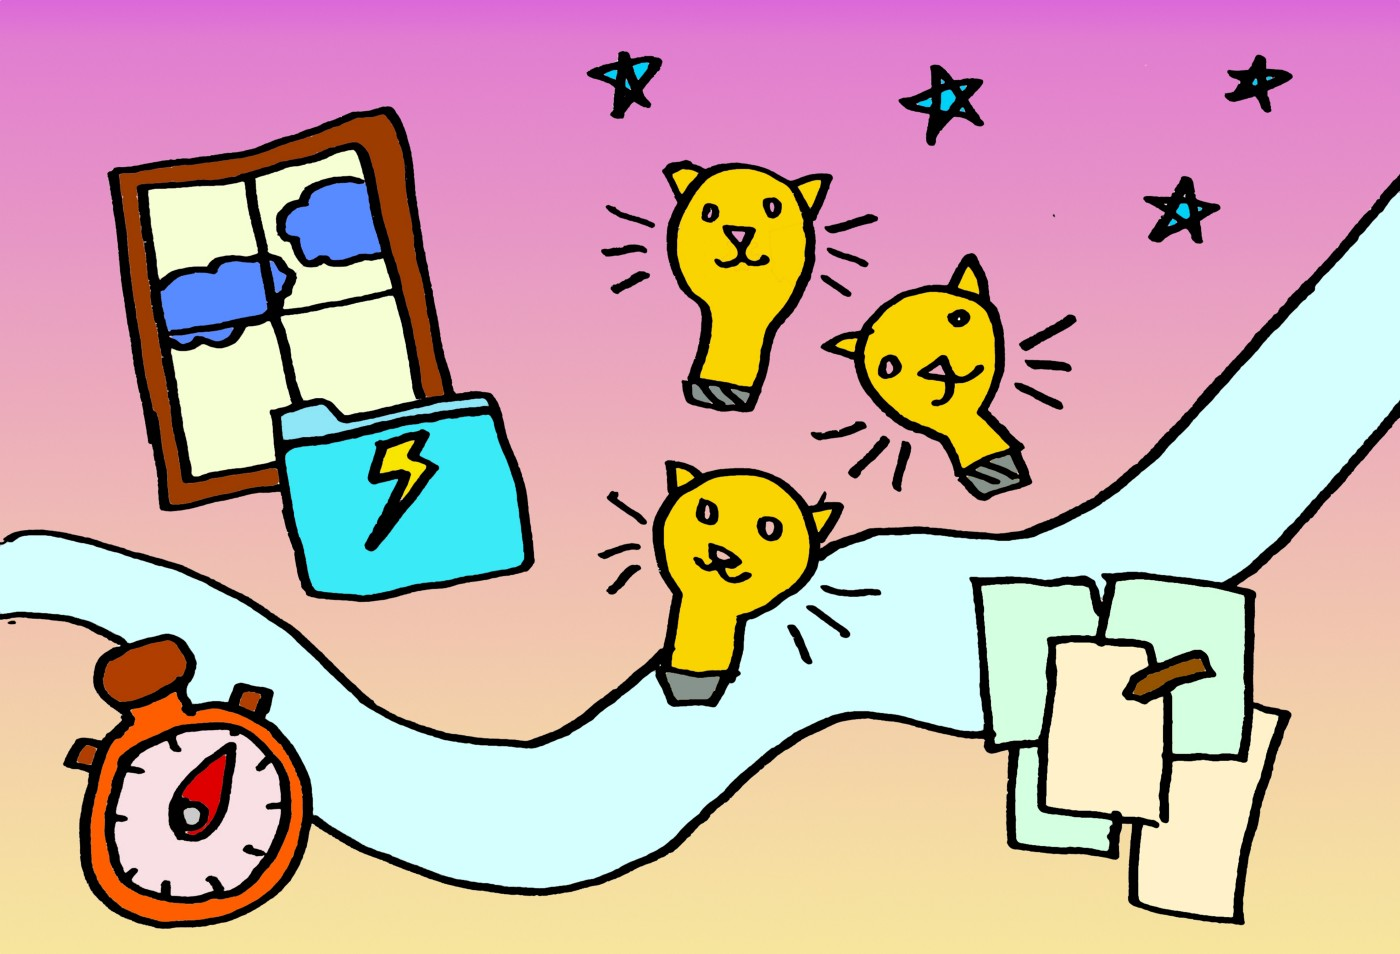 An illustration of a window, file folder with a lightning bolt, cat light bulbs, stars, paper and pen, and timer all floating